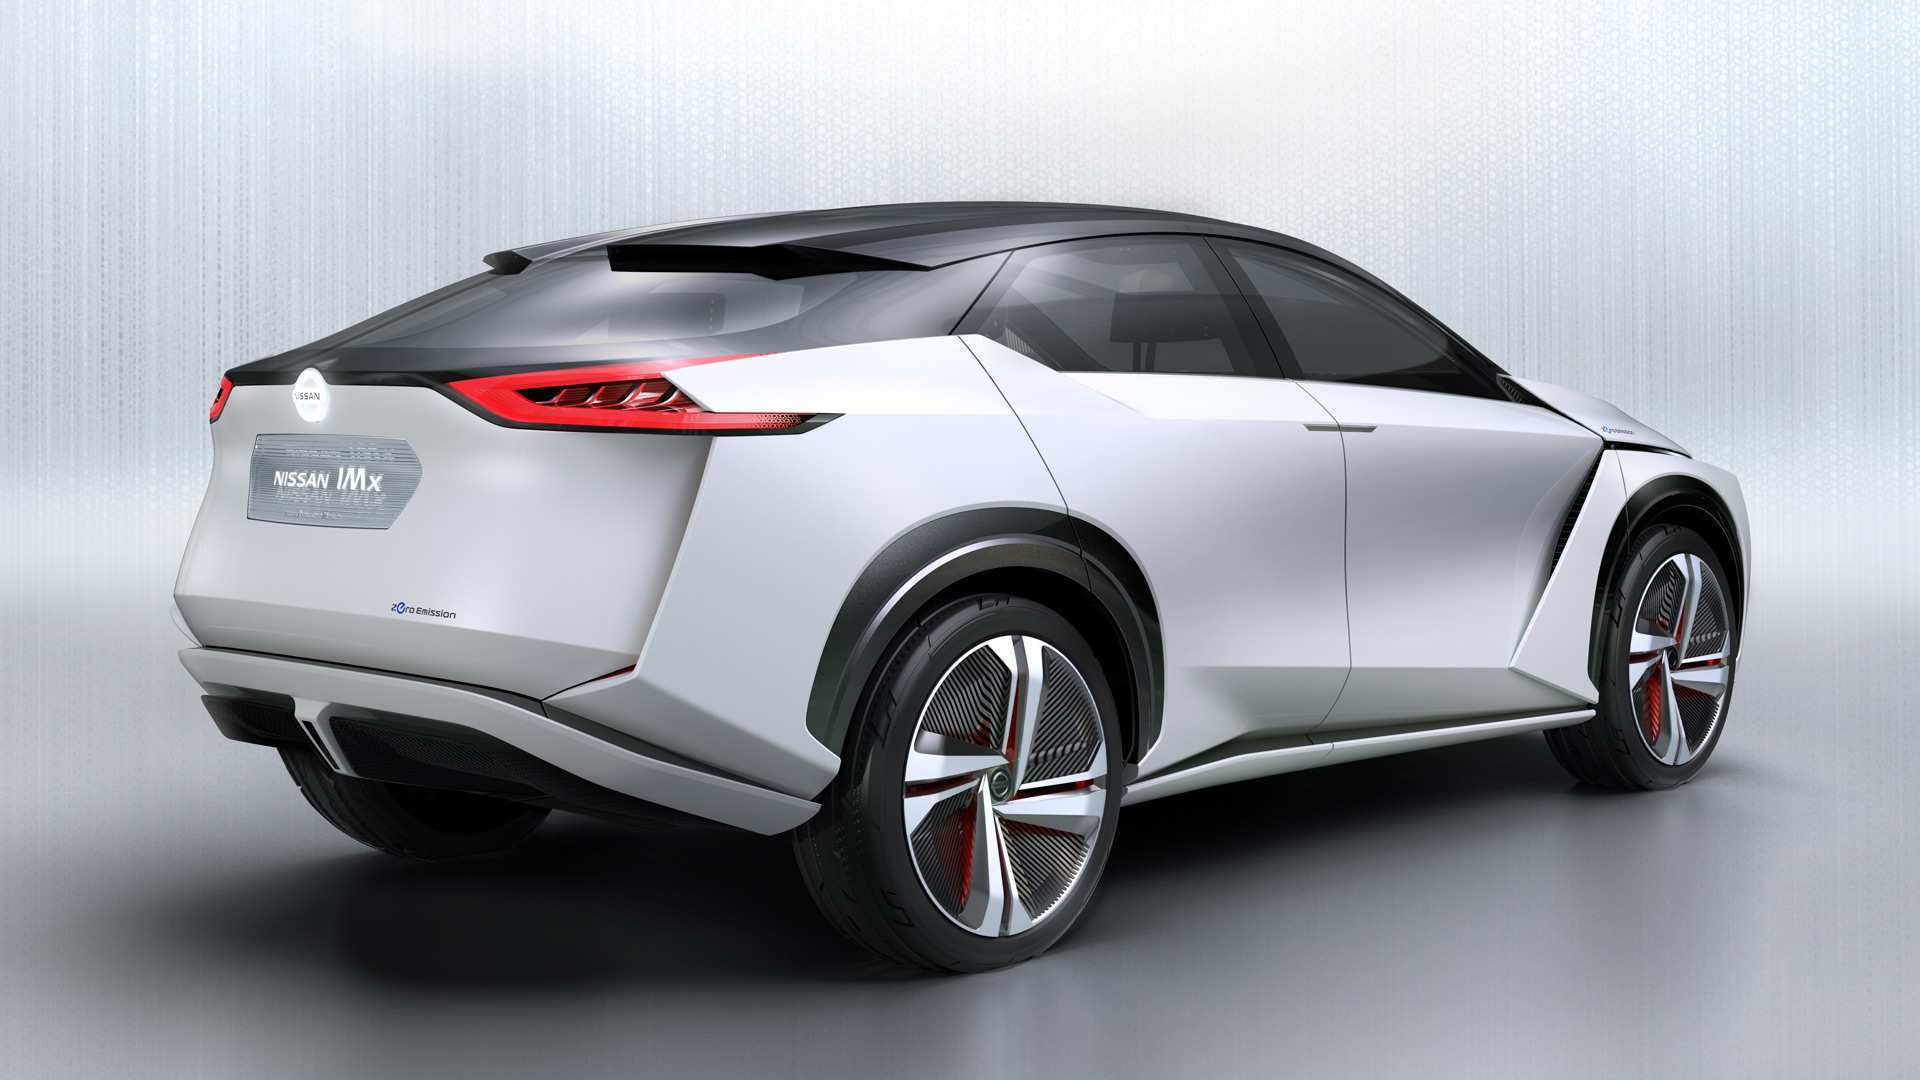 49 New Nissan 2020 Electric Car Price and Review for Nissan 2020 Electric Car